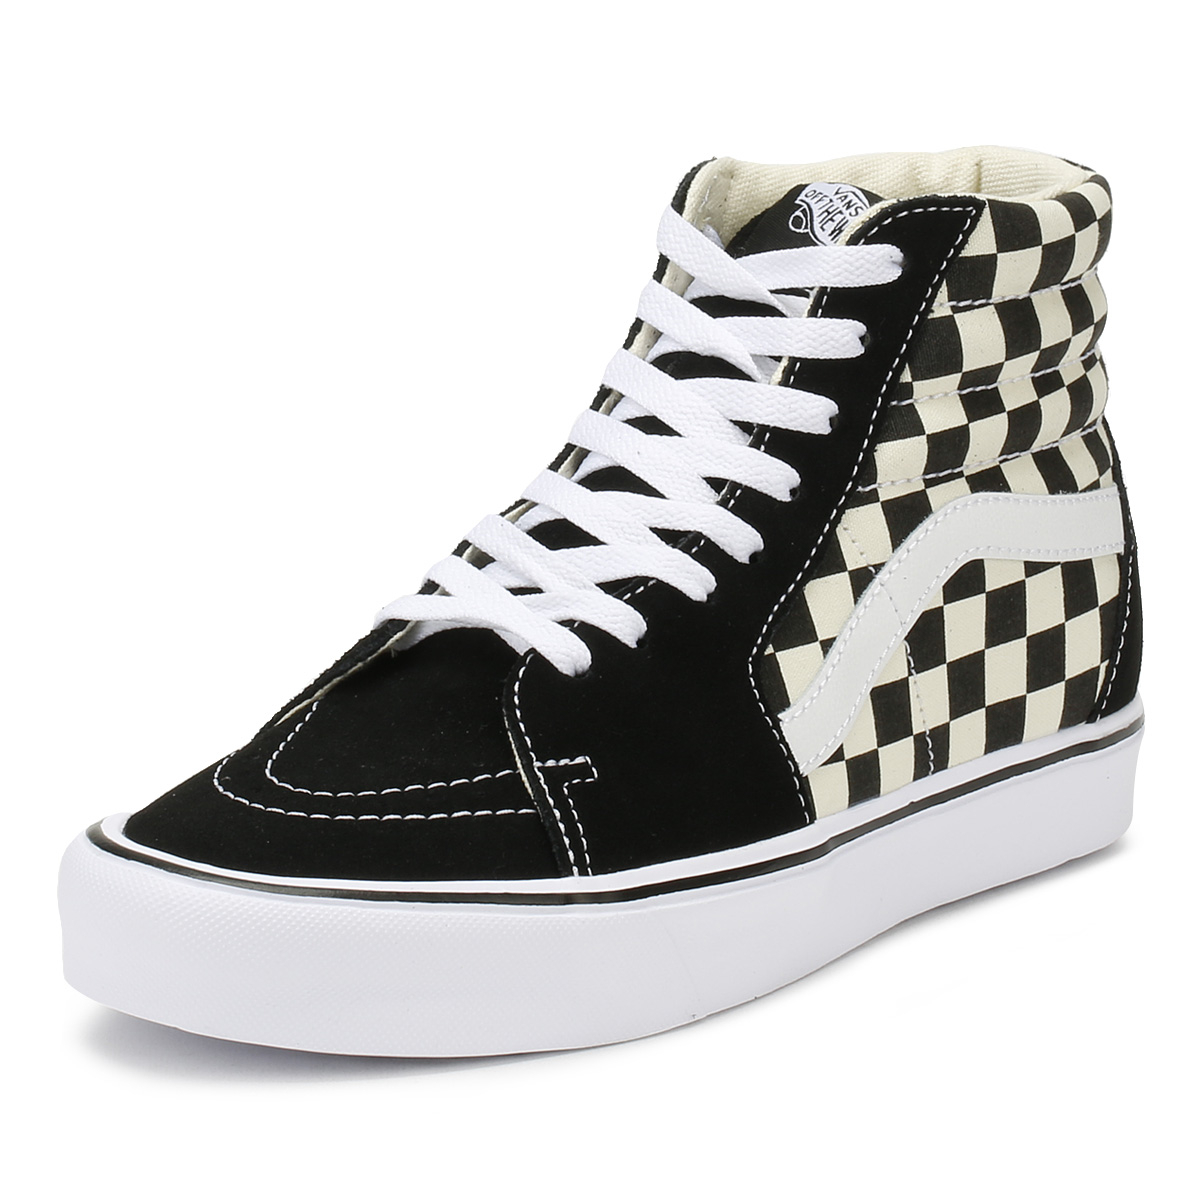 a0ad1ab4dafedf Details about Vans Unisex Black   White Trainers Checkerboard SK8-Hi Lite  Lace Up Skate Shoes